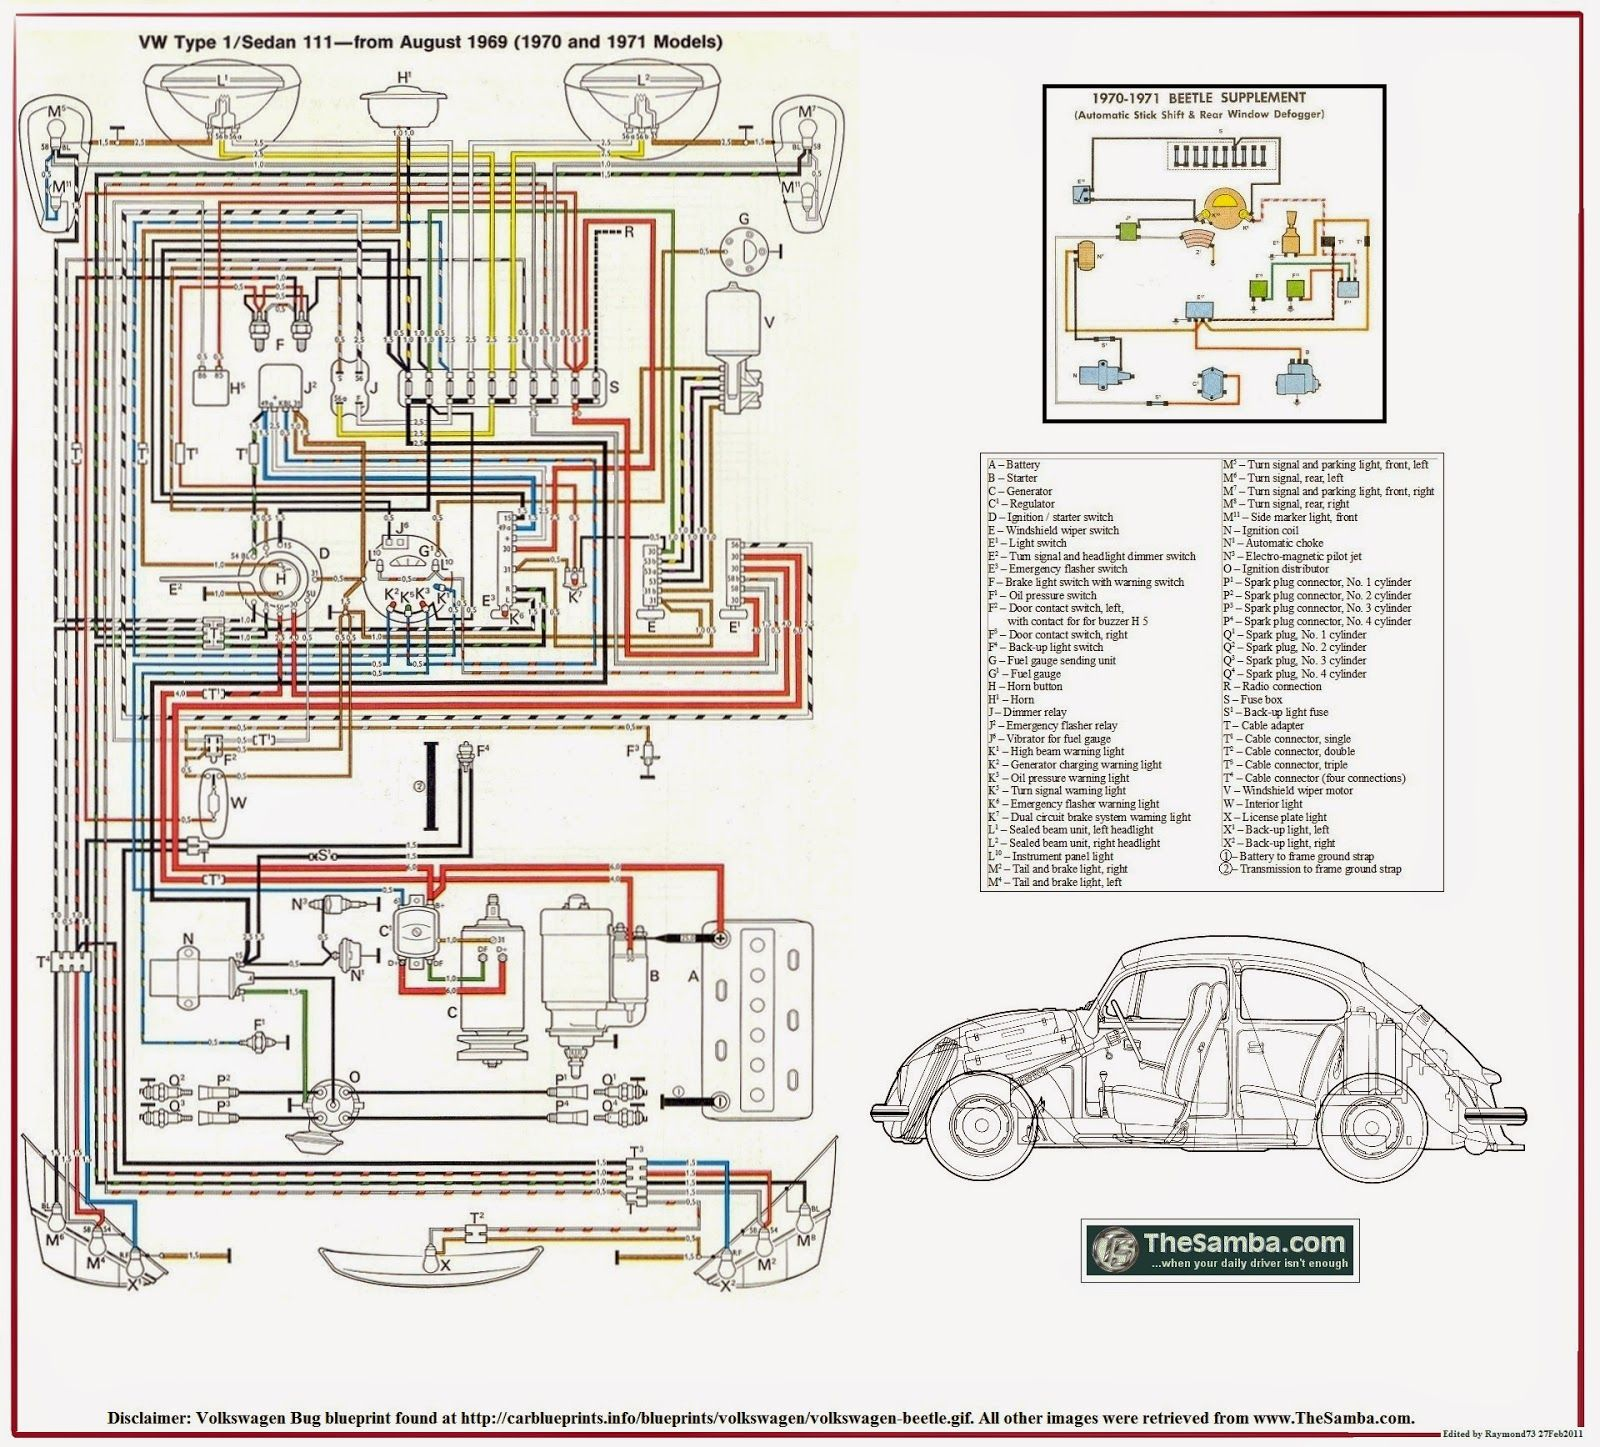 c42f7e50c6cd2df691326f8c1e5c6e97 urbi et orbi my bucket list journals volkswagen (vw) beetle new beetle radio wiring diagram at gsmportal.co